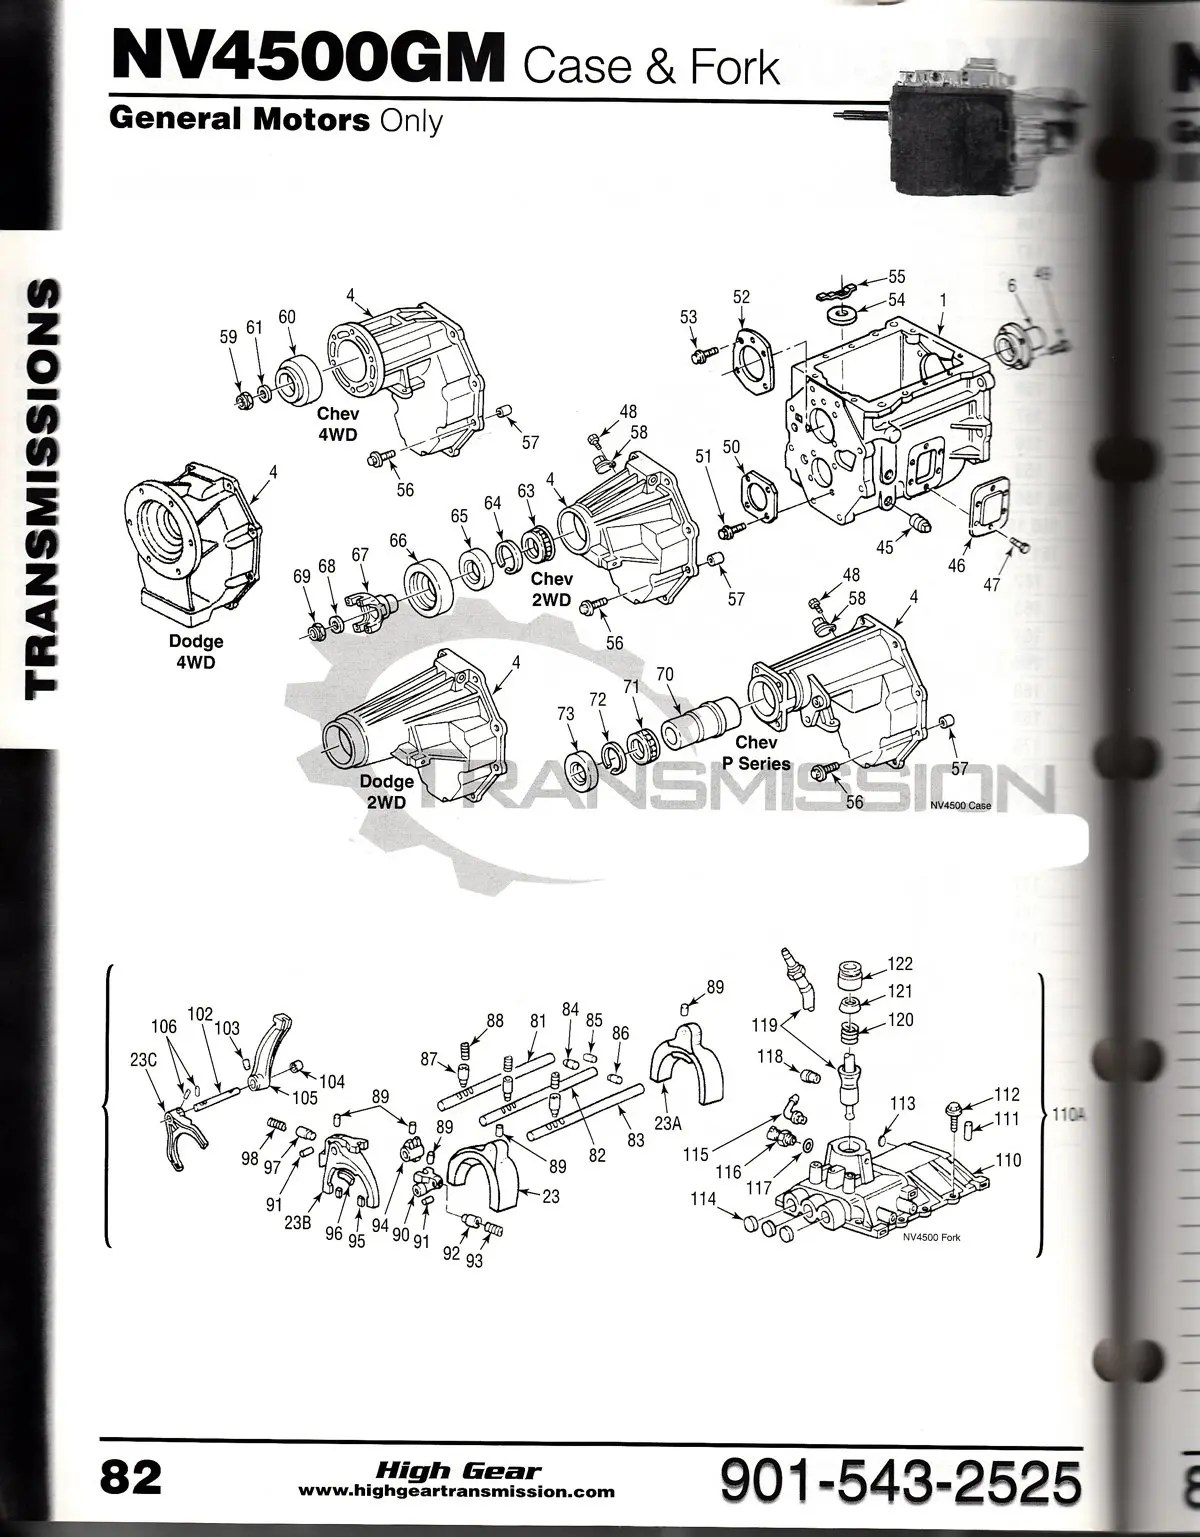 nv-4500 diagrams - nv4500 chevy and dodge tranmission parts  nv-4500 transmission